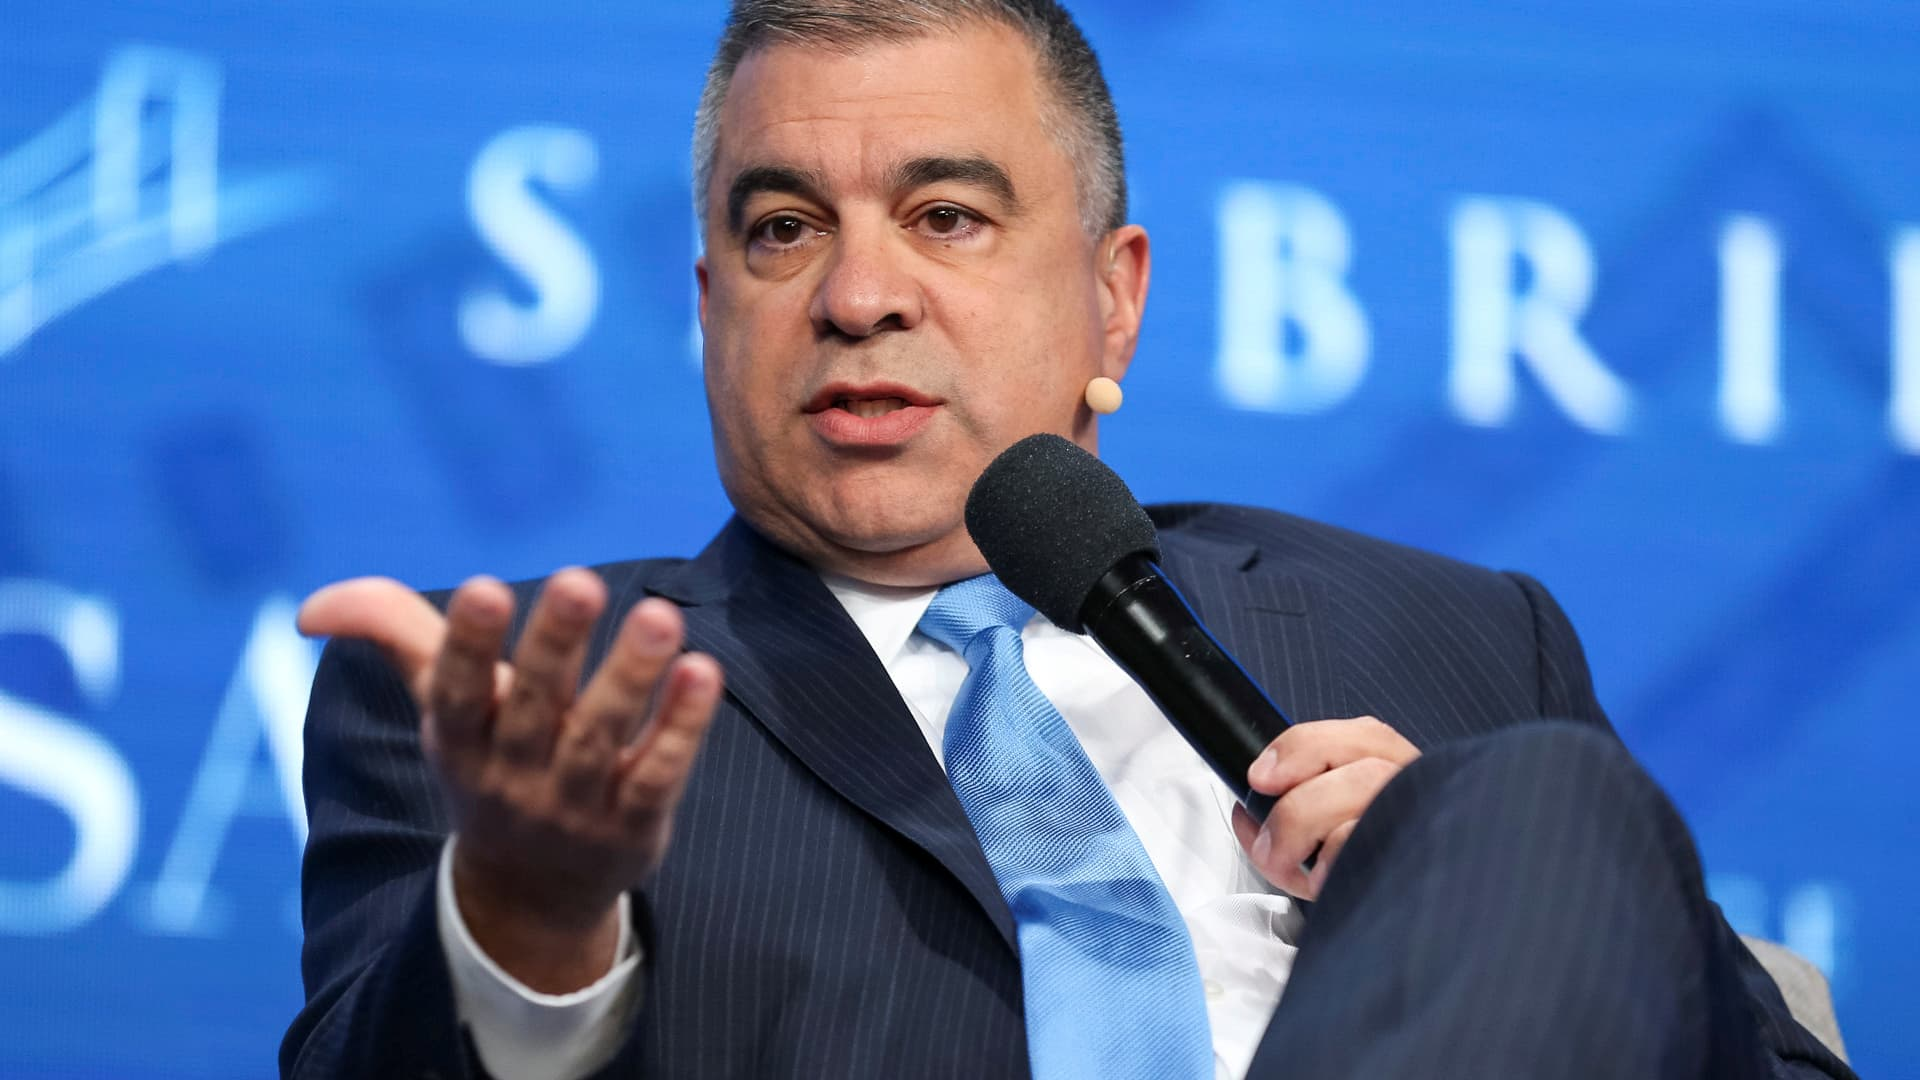 David Bossie, Donald Trump's deputy campaign manager and political activist, speaks during the SALT conference in Las Vegas, Nevada, May 18, 2017.